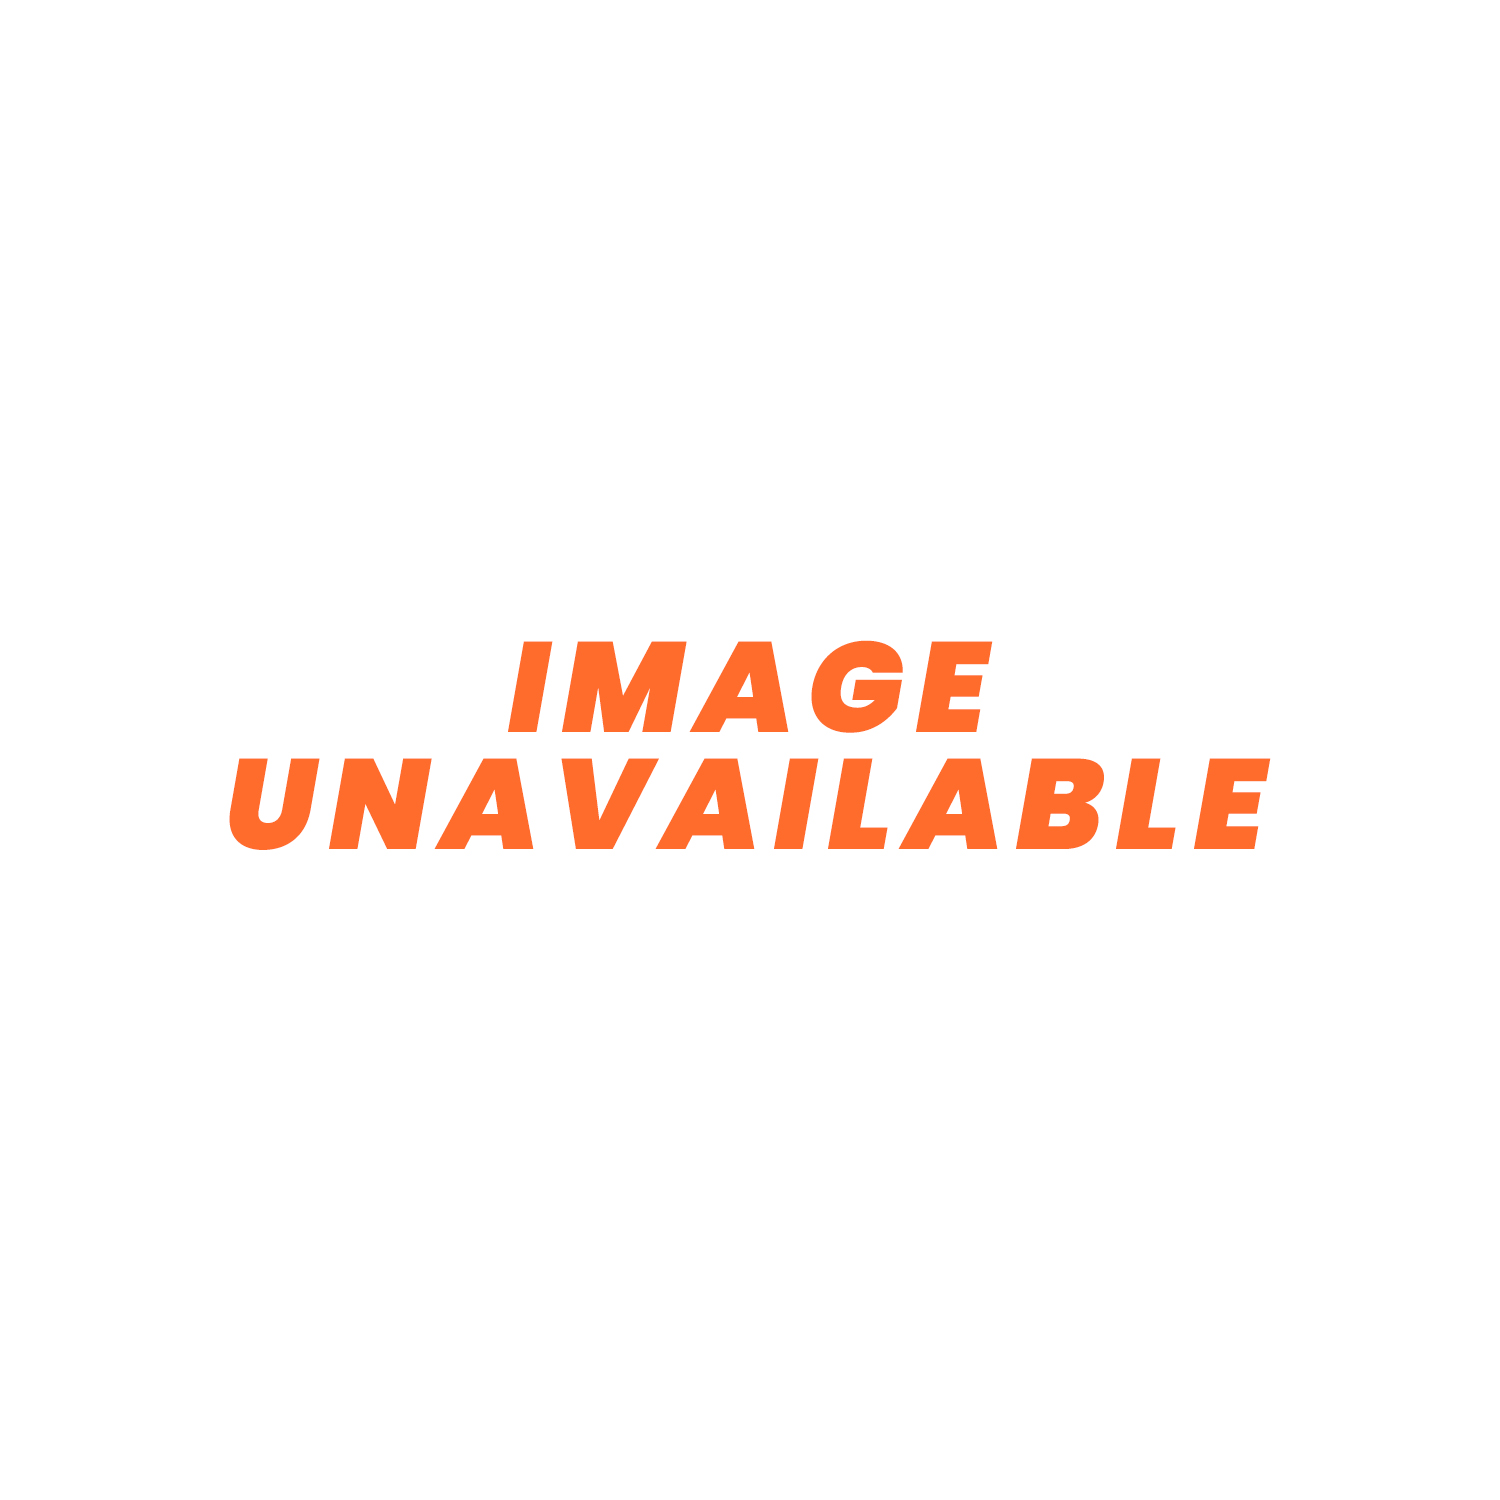 Standard blade fuse box with leds way